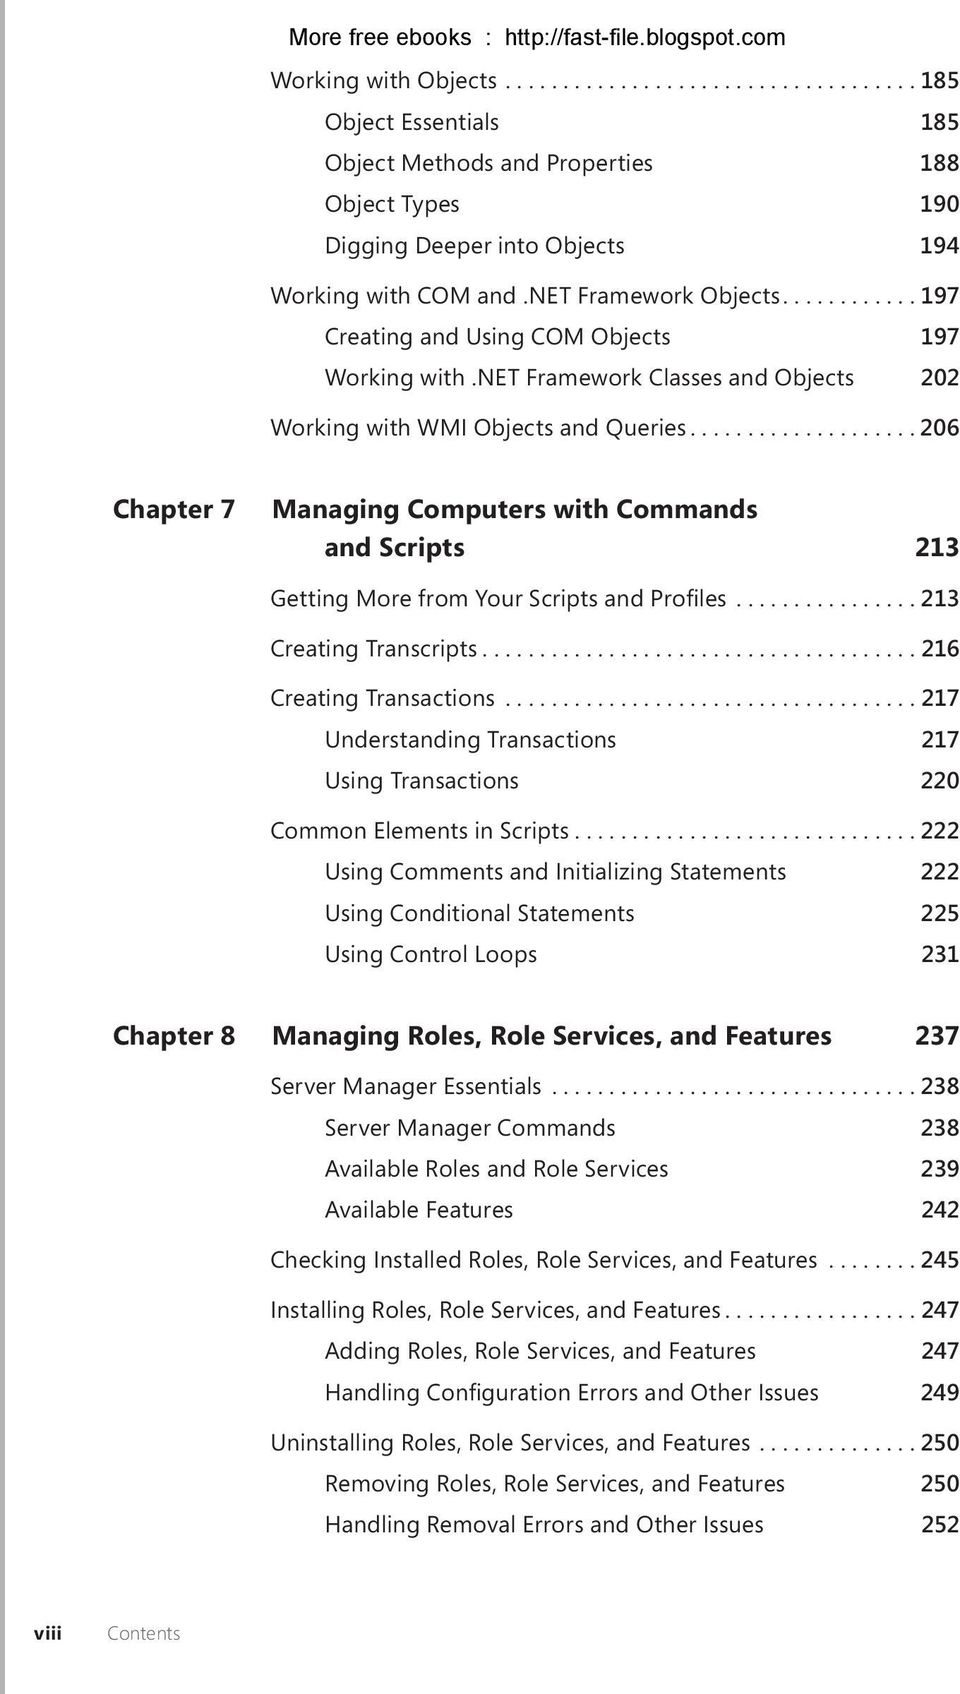 ..206 Chapter 7 Managing Computers with Commands and Scripts 213 Getting More from Your Scripts and Profiles...213 Creating Transcripts...216 Creating Transactions.